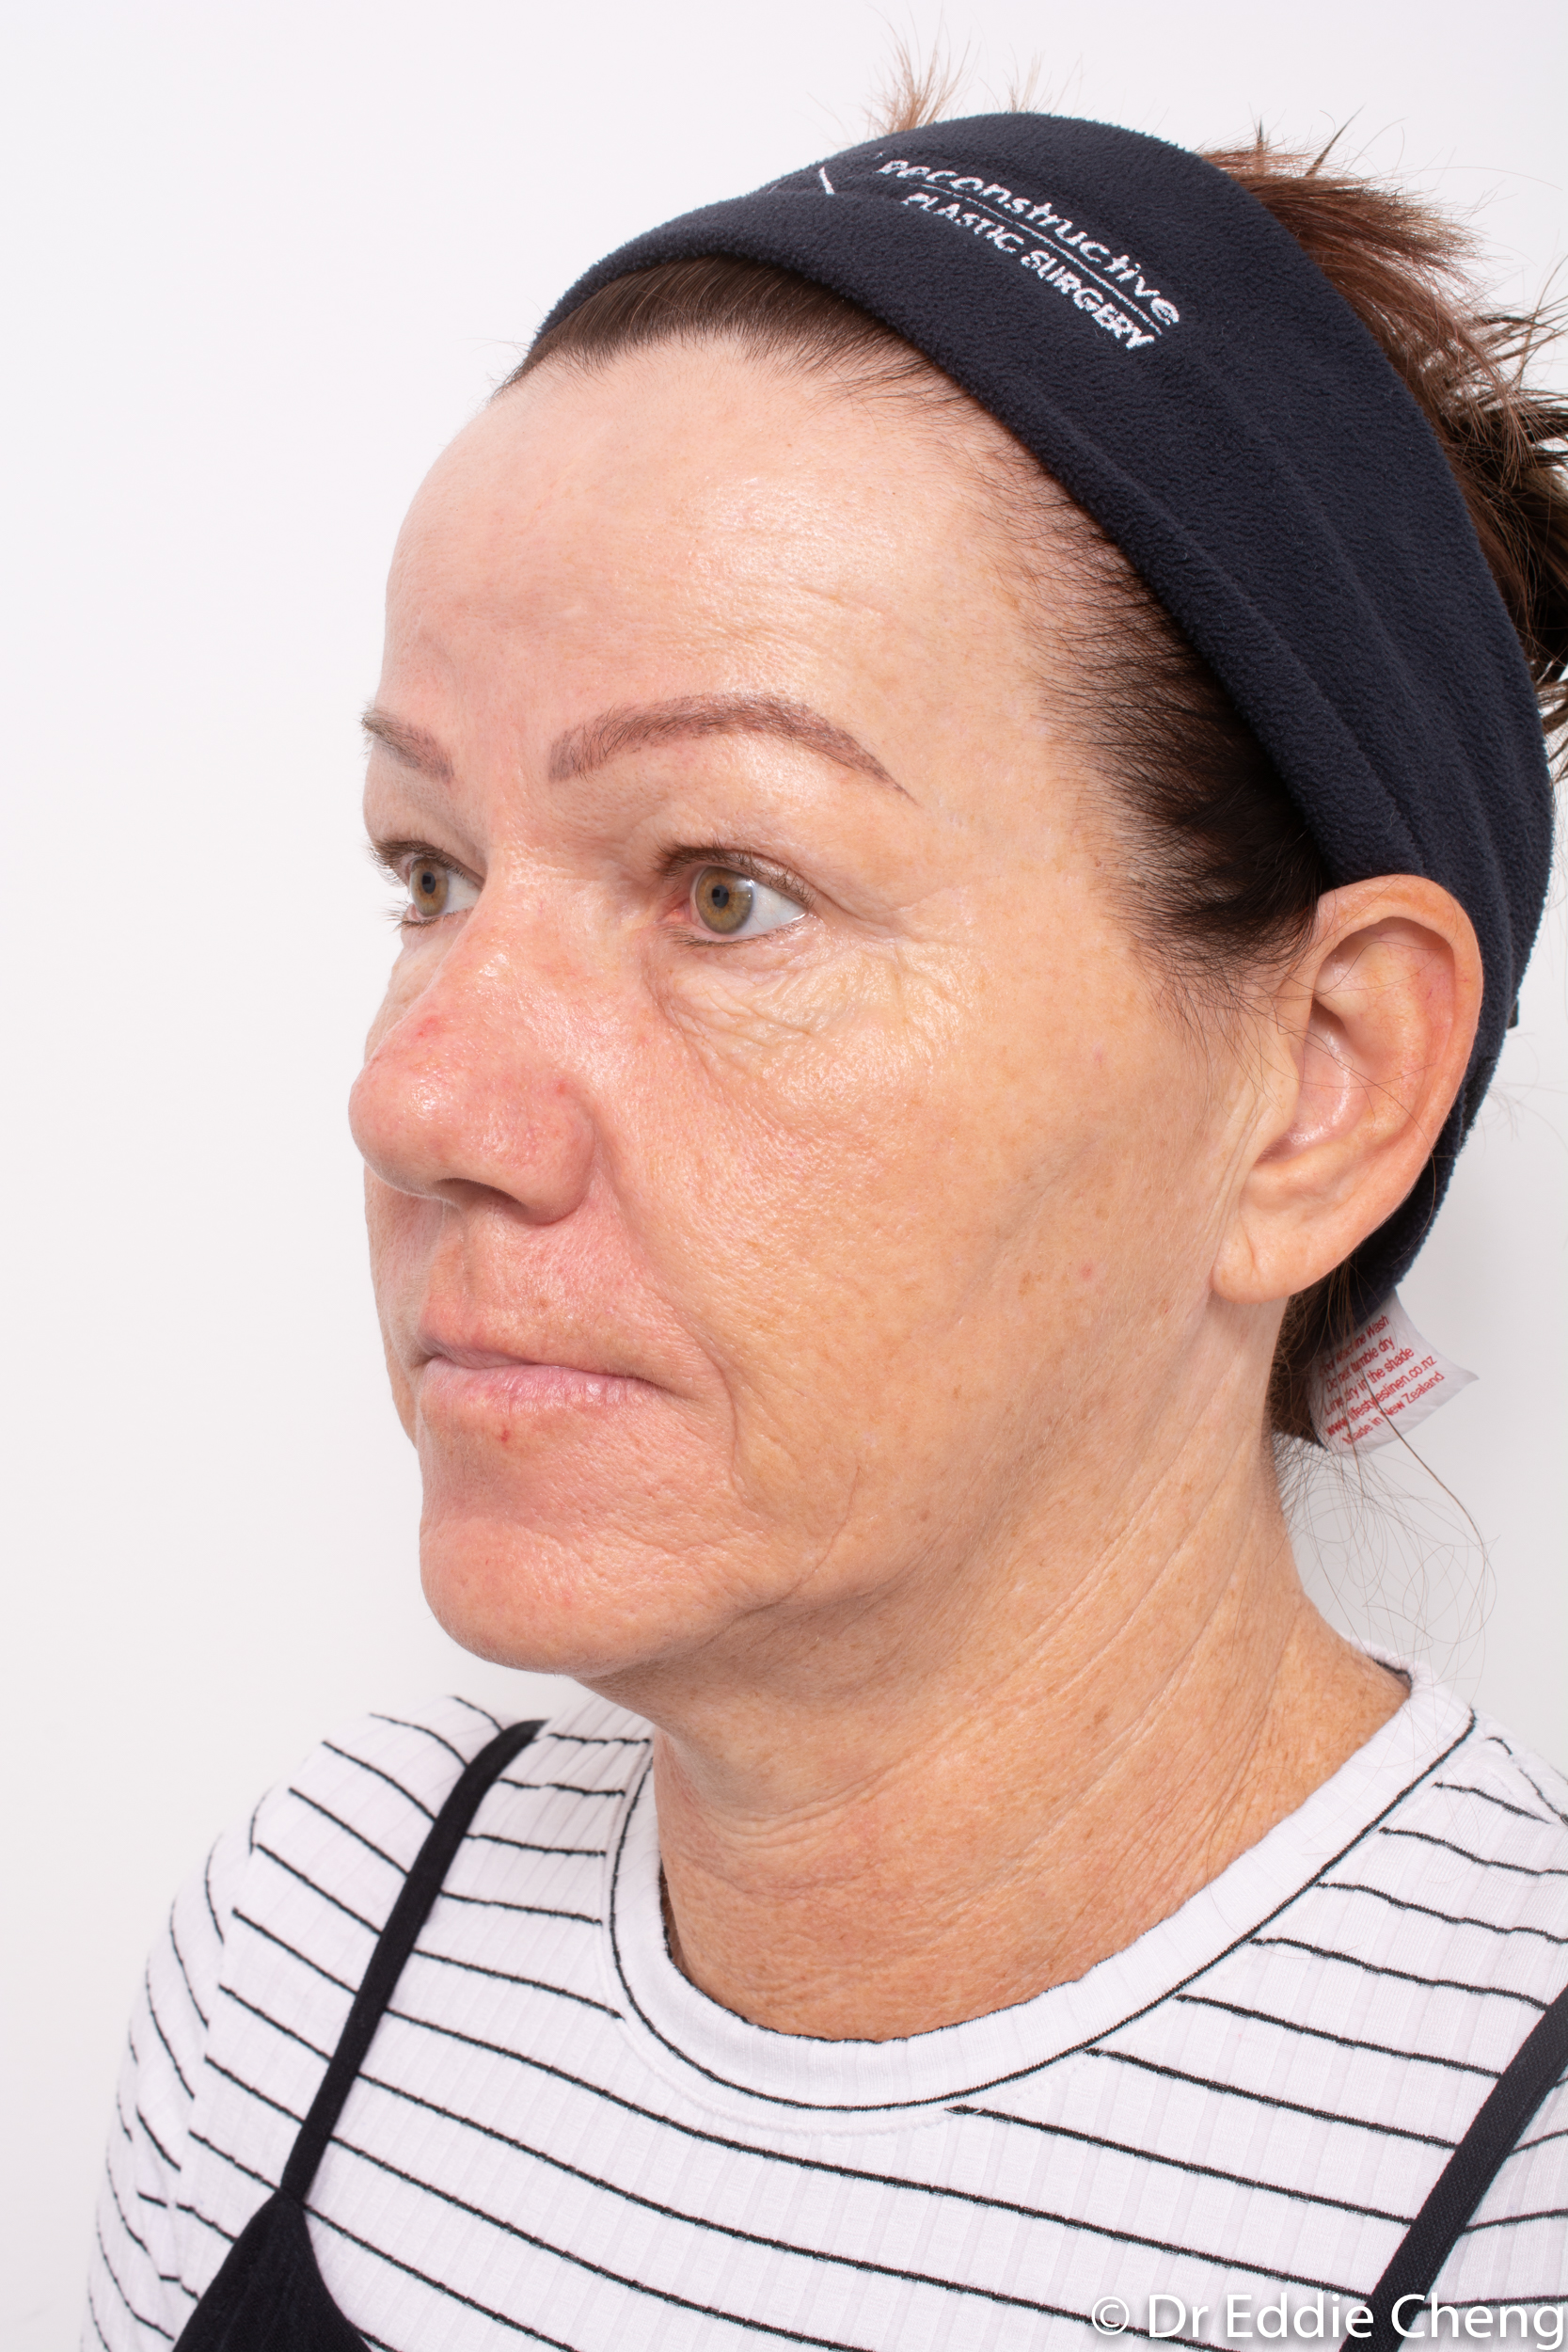 Brow lift dr eddie cheng blepharoplasty pre and post operative brisbane surgeon -4-2